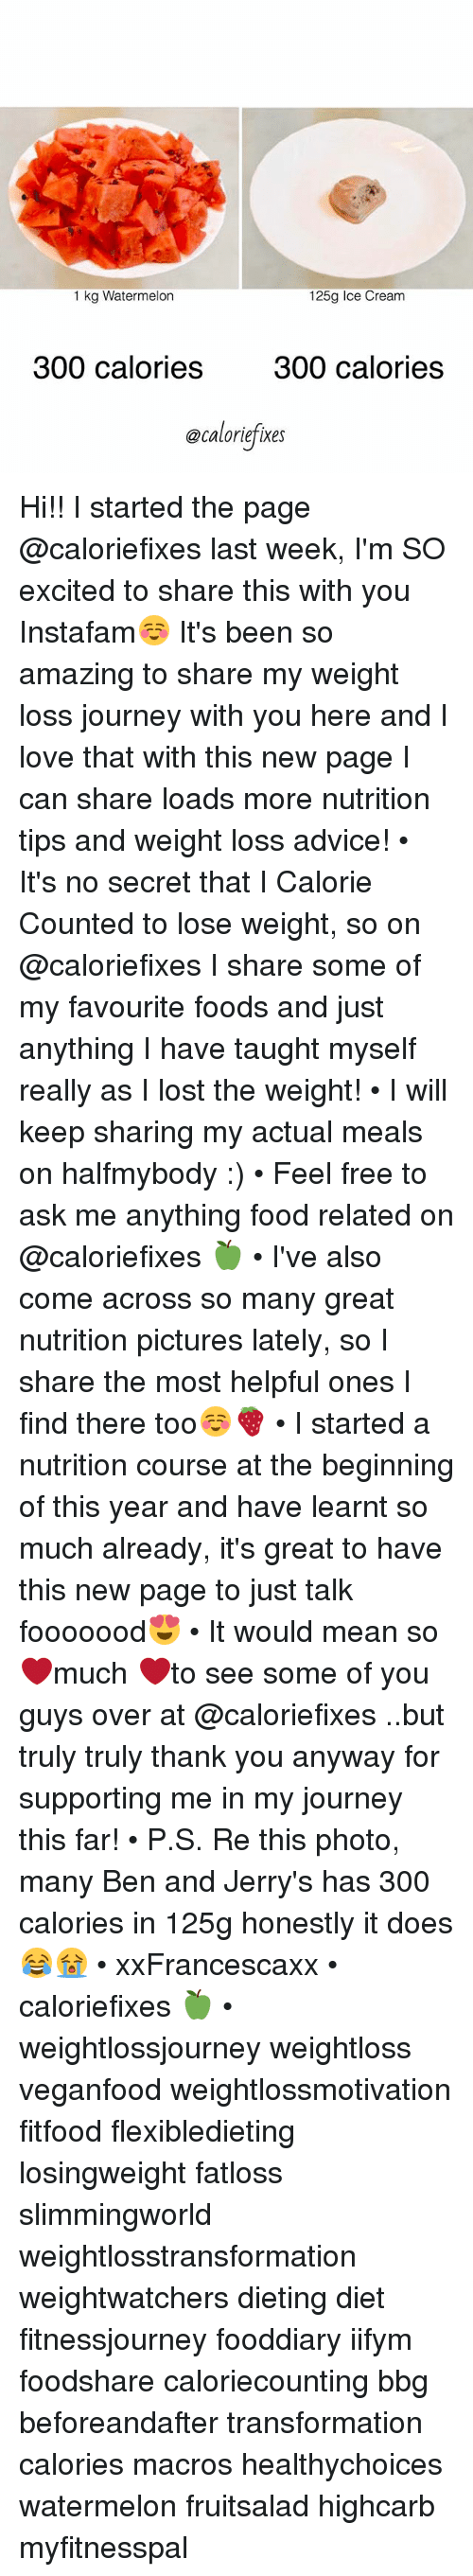 Ask Me Anything: 1 kg Watermelon  125g Ice Cream  300 calories 300 calories  @caloriefixes Hi!! I started the page @caloriefixes last week, I'm SO excited to share this with you Instafam☺️ It's been so amazing to share my weight loss journey with you here and I love that with this new page I can share loads more nutrition tips and weight loss advice! • It's no secret that I Calorie Counted to lose weight, so on @caloriefixes I share some of my favourite foods and just anything I have taught myself really as I lost the weight! • I will keep sharing my actual meals on halfmybody :) • Feel free to ask me anything food related on @caloriefixes 🍏 • I've also come across so many great nutrition pictures lately, so I share the most helpful ones I find there too☺️🍓 • I started a nutrition course at the beginning of this year and have learnt so much already, it's great to have this new page to just talk fooooood😍 • It would mean so ❤️much ❤️to see some of you guys over at @caloriefixes ..but truly truly thank you anyway for supporting me in my journey this far! • P.S. Re this photo, many Ben and Jerry's has 300 calories in 125g <as many people were unsure on @caloriefixes !> honestly it does😂😭 • xxFrancescaxx • caloriefixes 🍏 • weightlossjourney weightloss veganfood weightlossmotivation fitfood flexibledieting losingweight fatloss slimmingworld weightlosstransformation weightwatchers dieting diet fitnessjourney fooddiary iifym foodshare caloriecounting bbg beforeandafter transformation calories macros healthychoices watermelon fruitsalad highcarb myfitnesspal